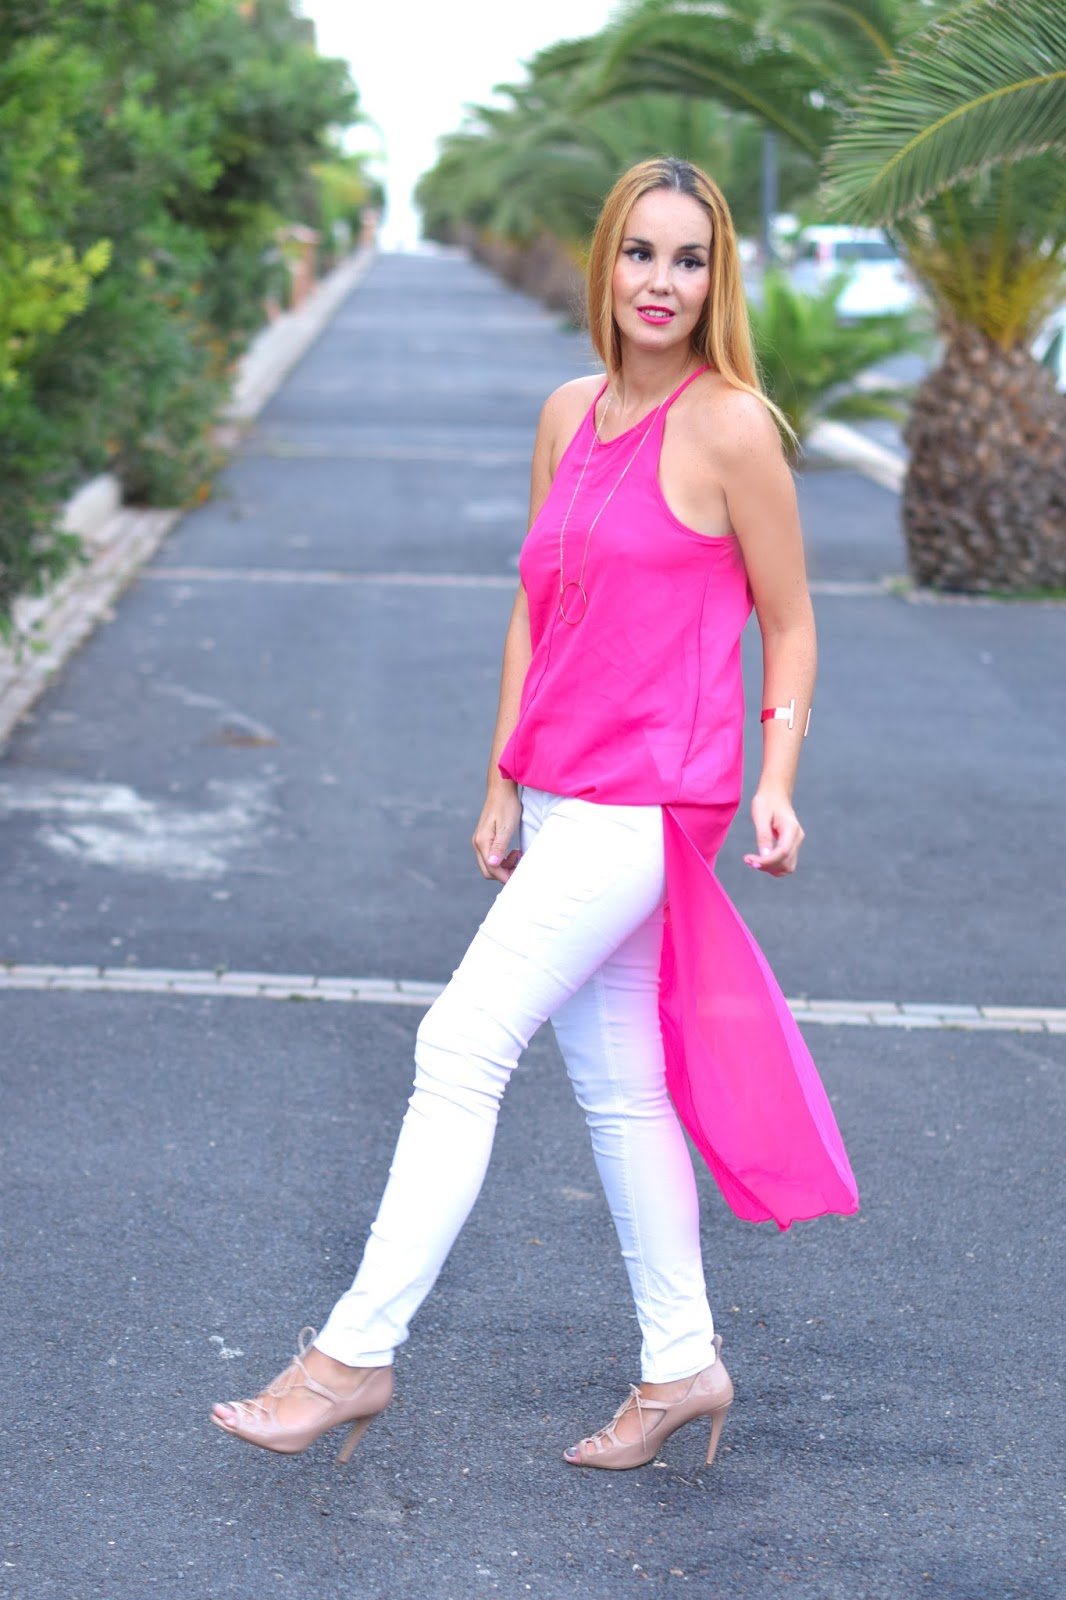 nery hdez, dresslink, primark, pink, blonde, wear to work